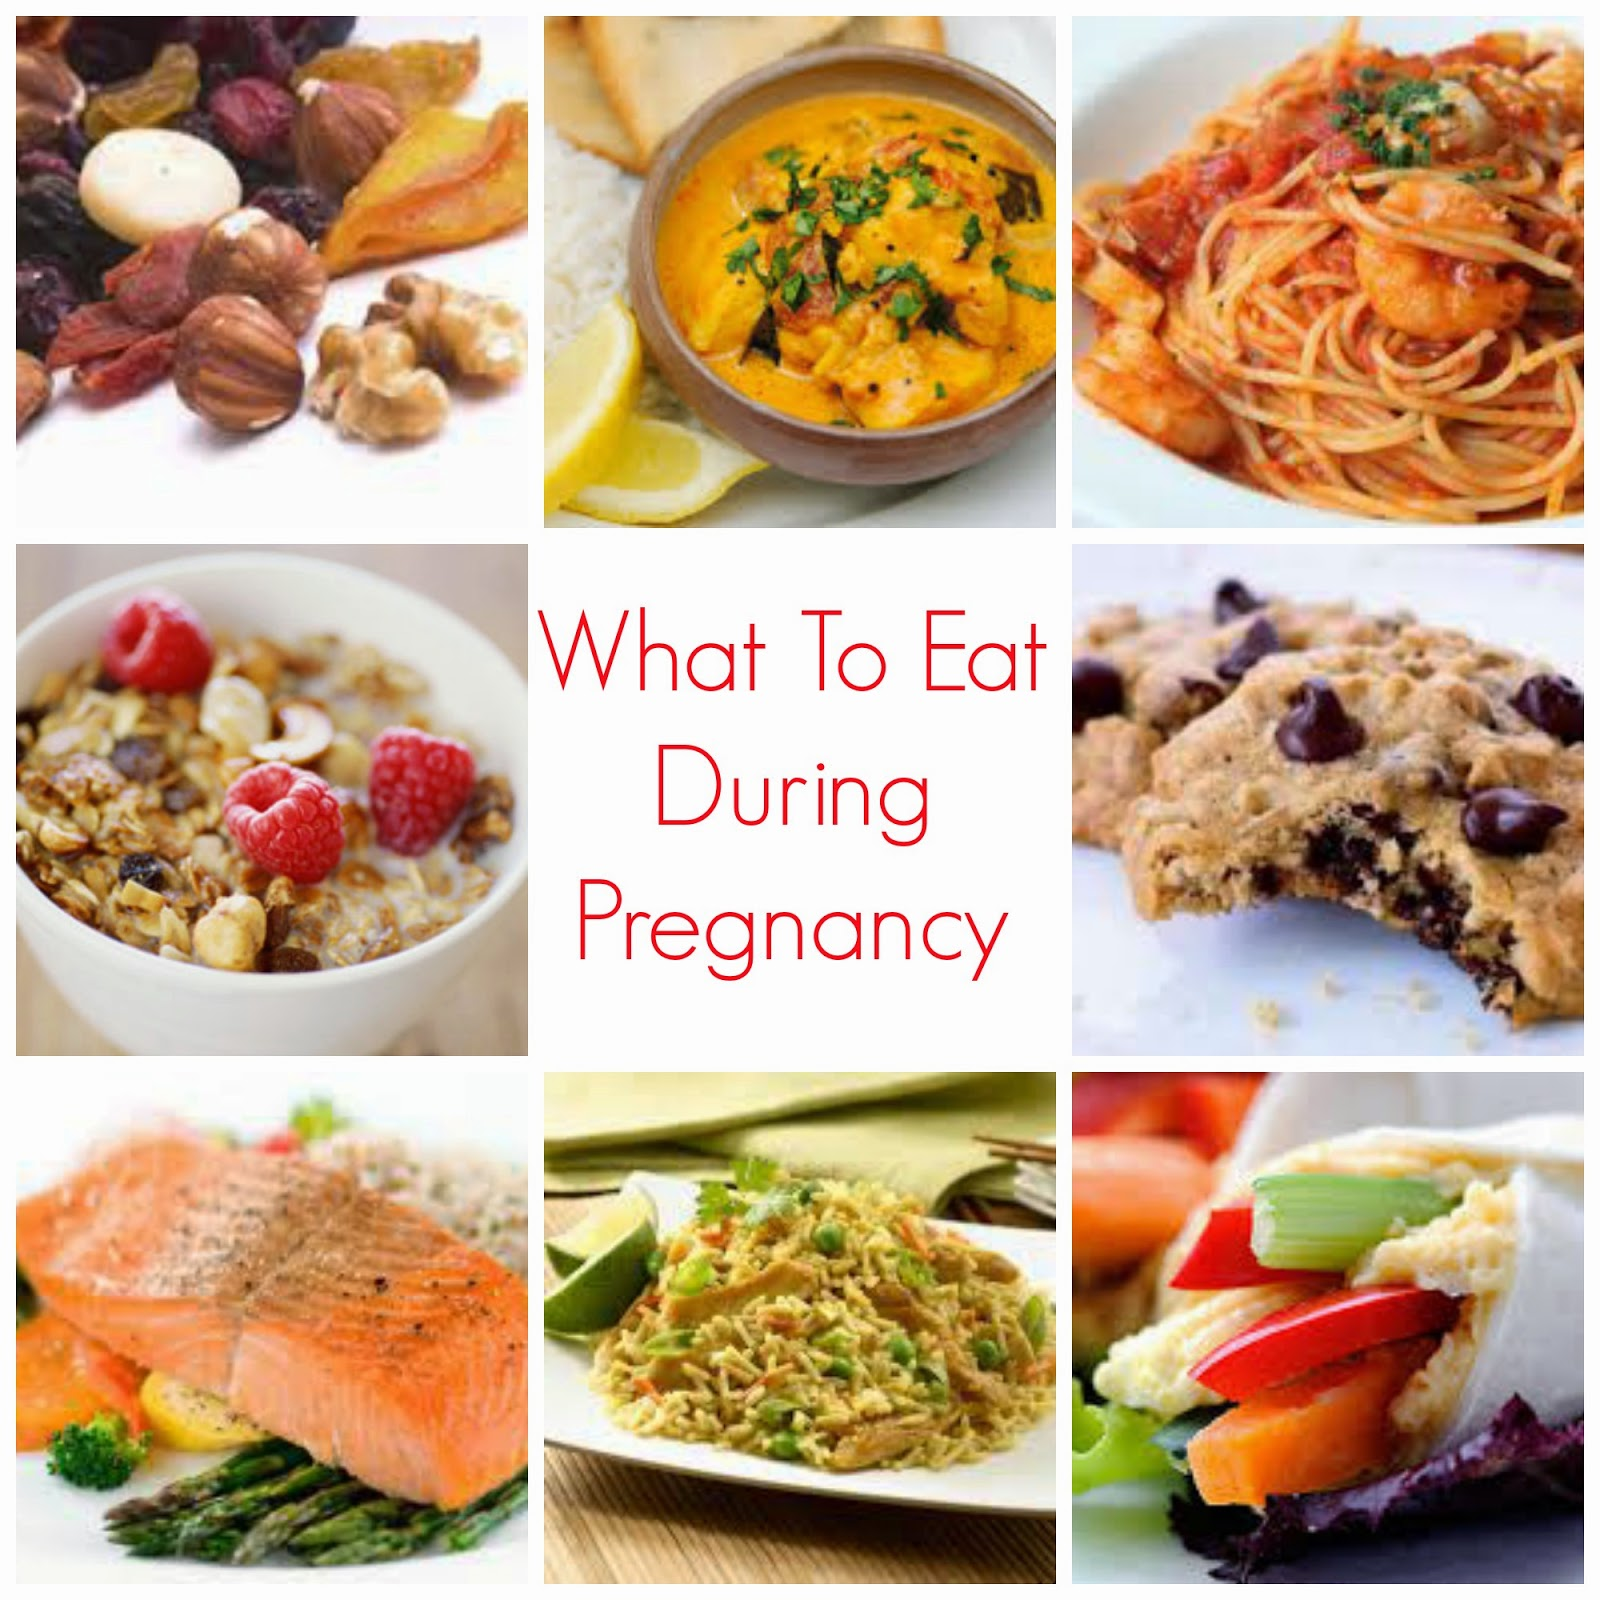 2 Healthy Cakes To Eat During Pregnancy